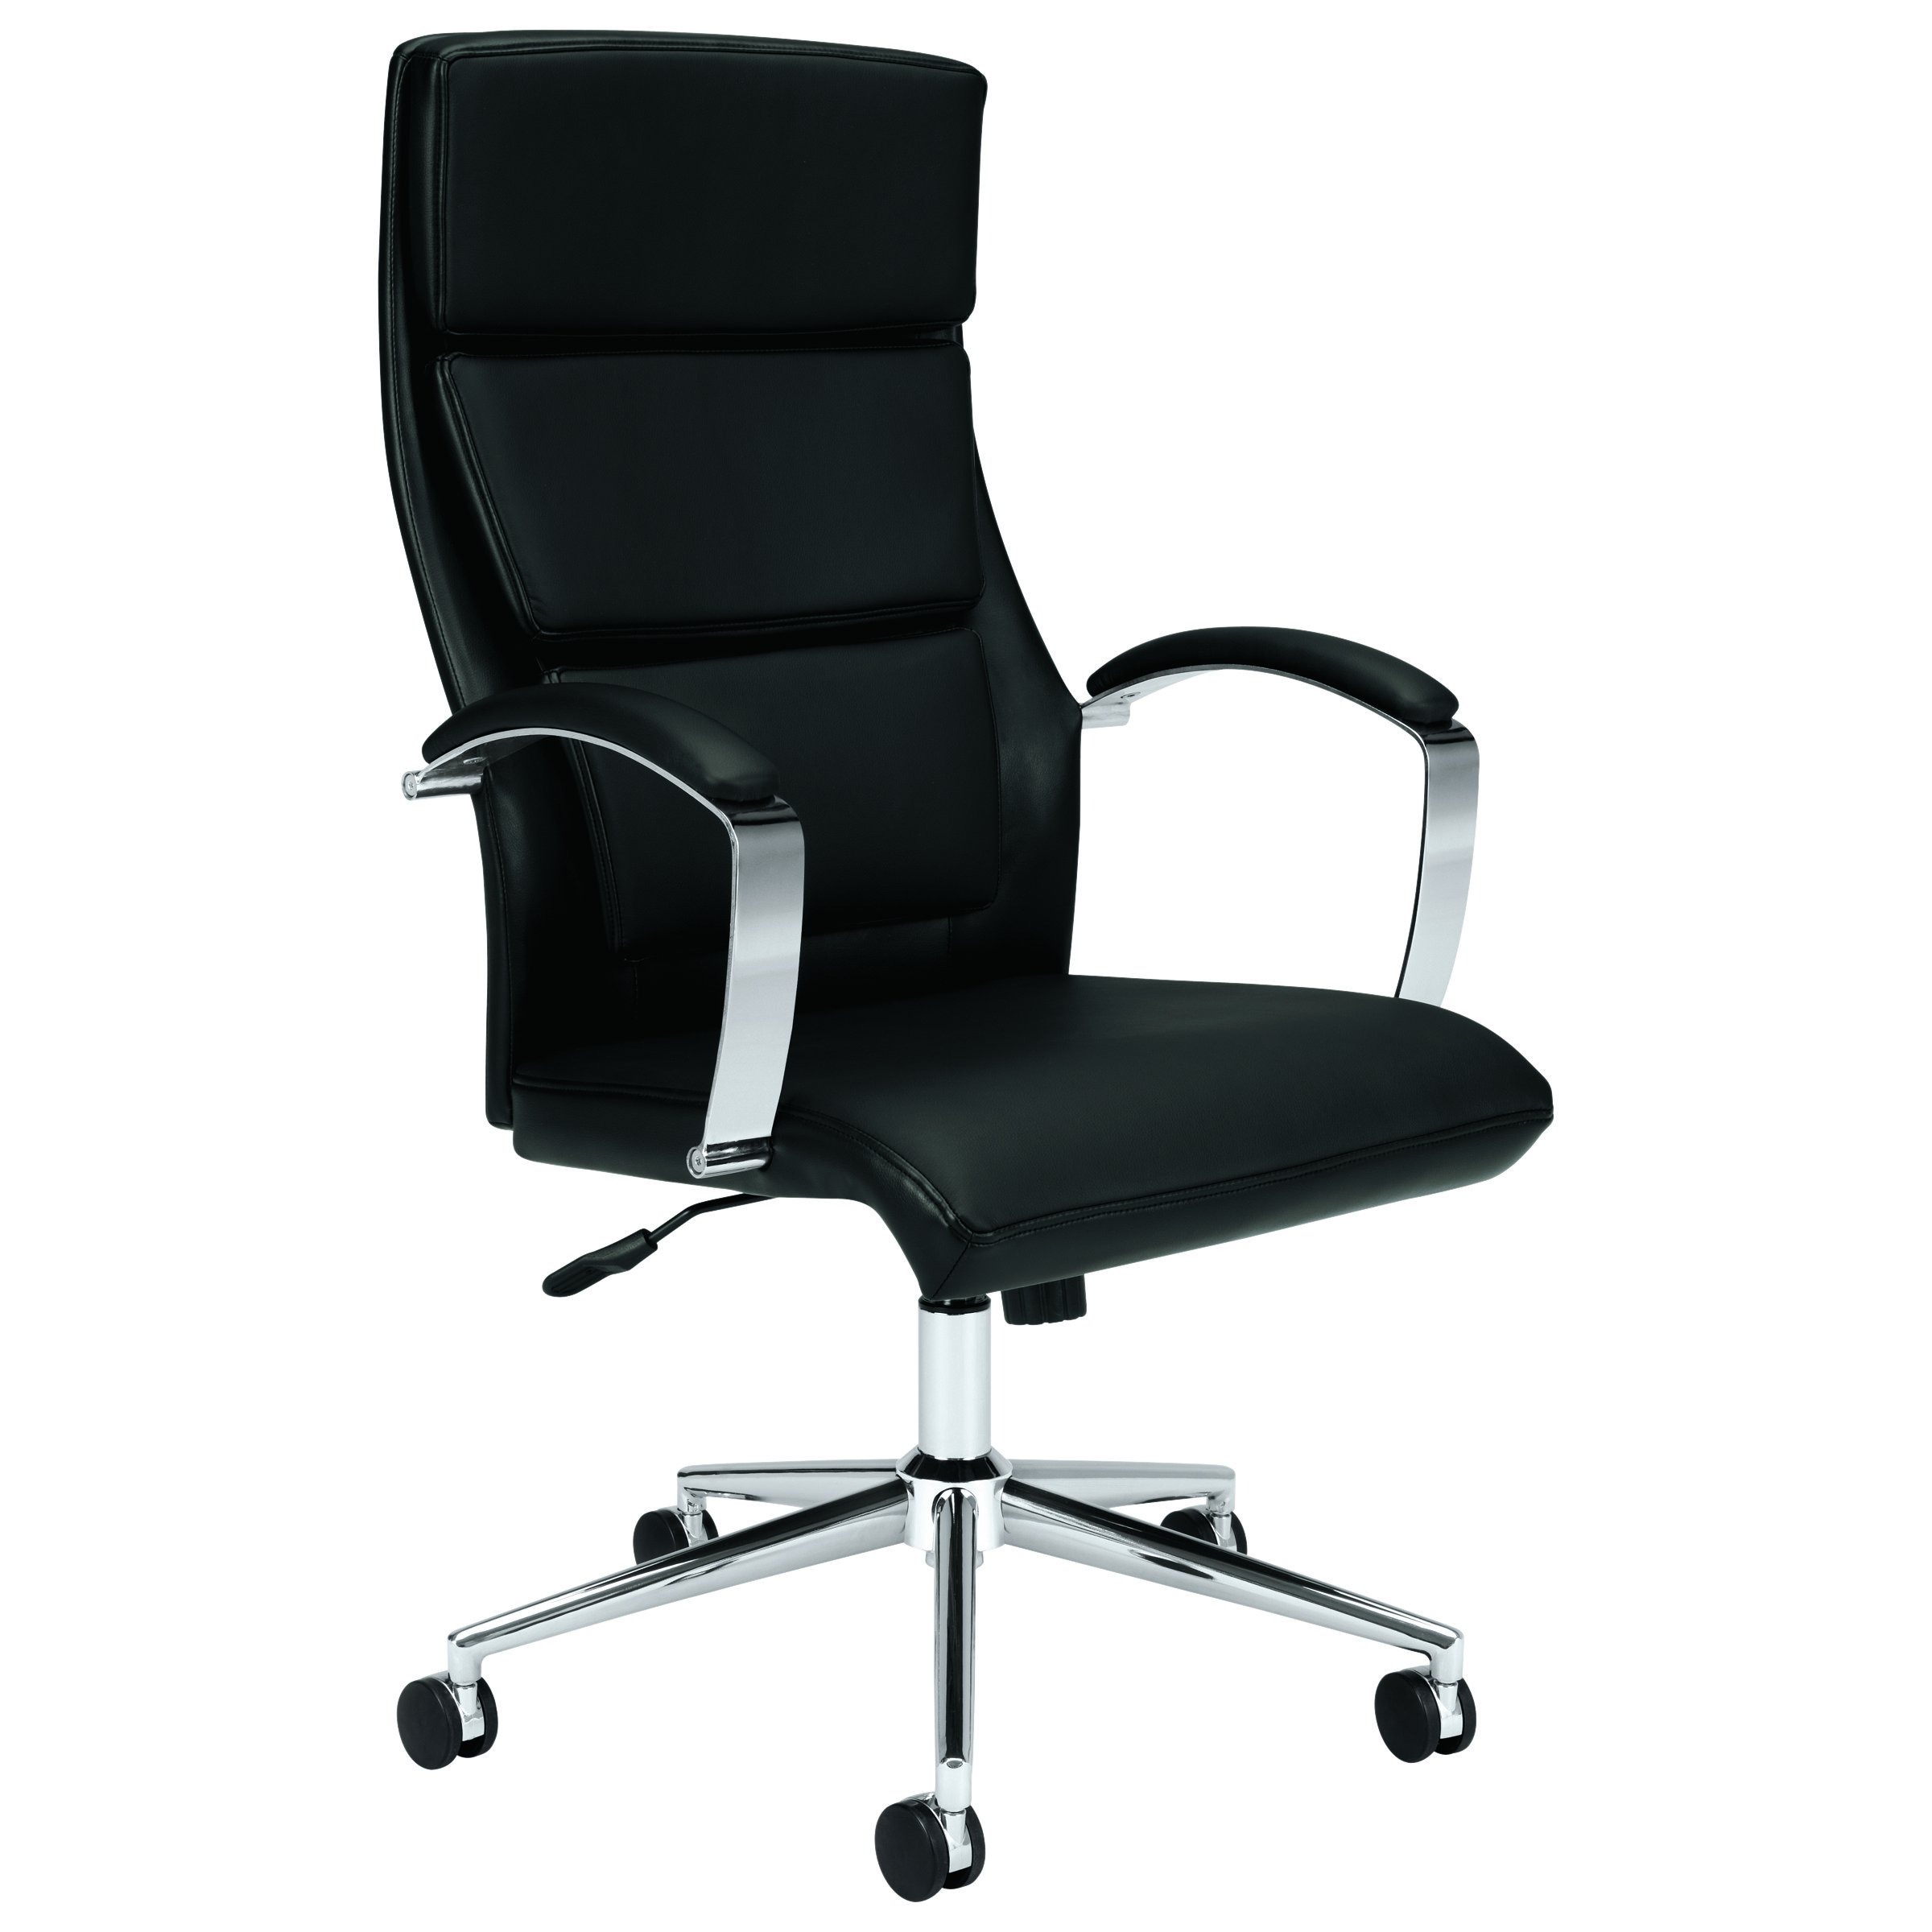 HON Executive Task Chair - High Back Leather Computer Chair Office Desk, Black (VL105)